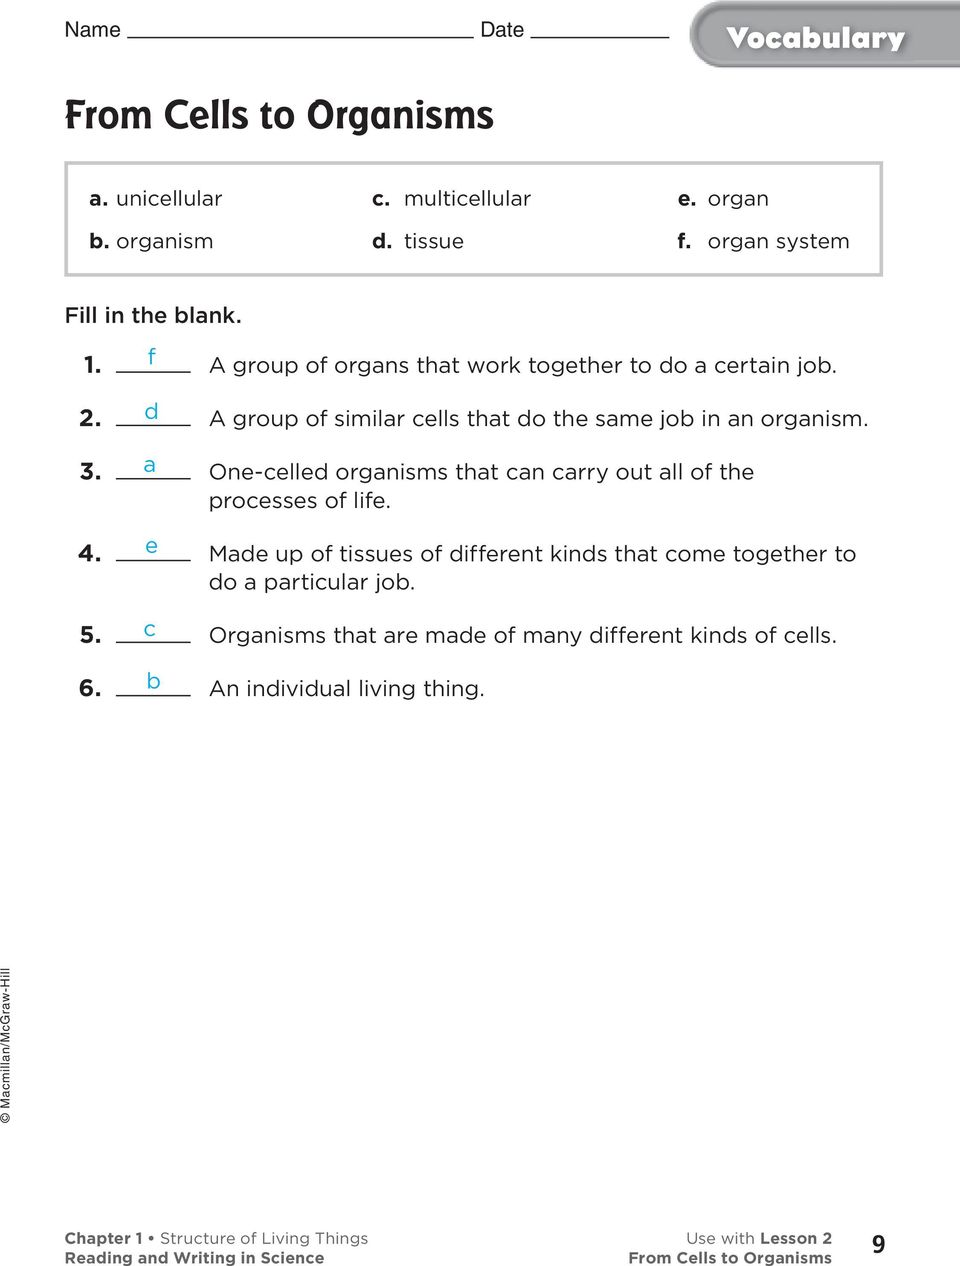 Chapter 1 Structure of Living Things    1 Chapter 2 Plant